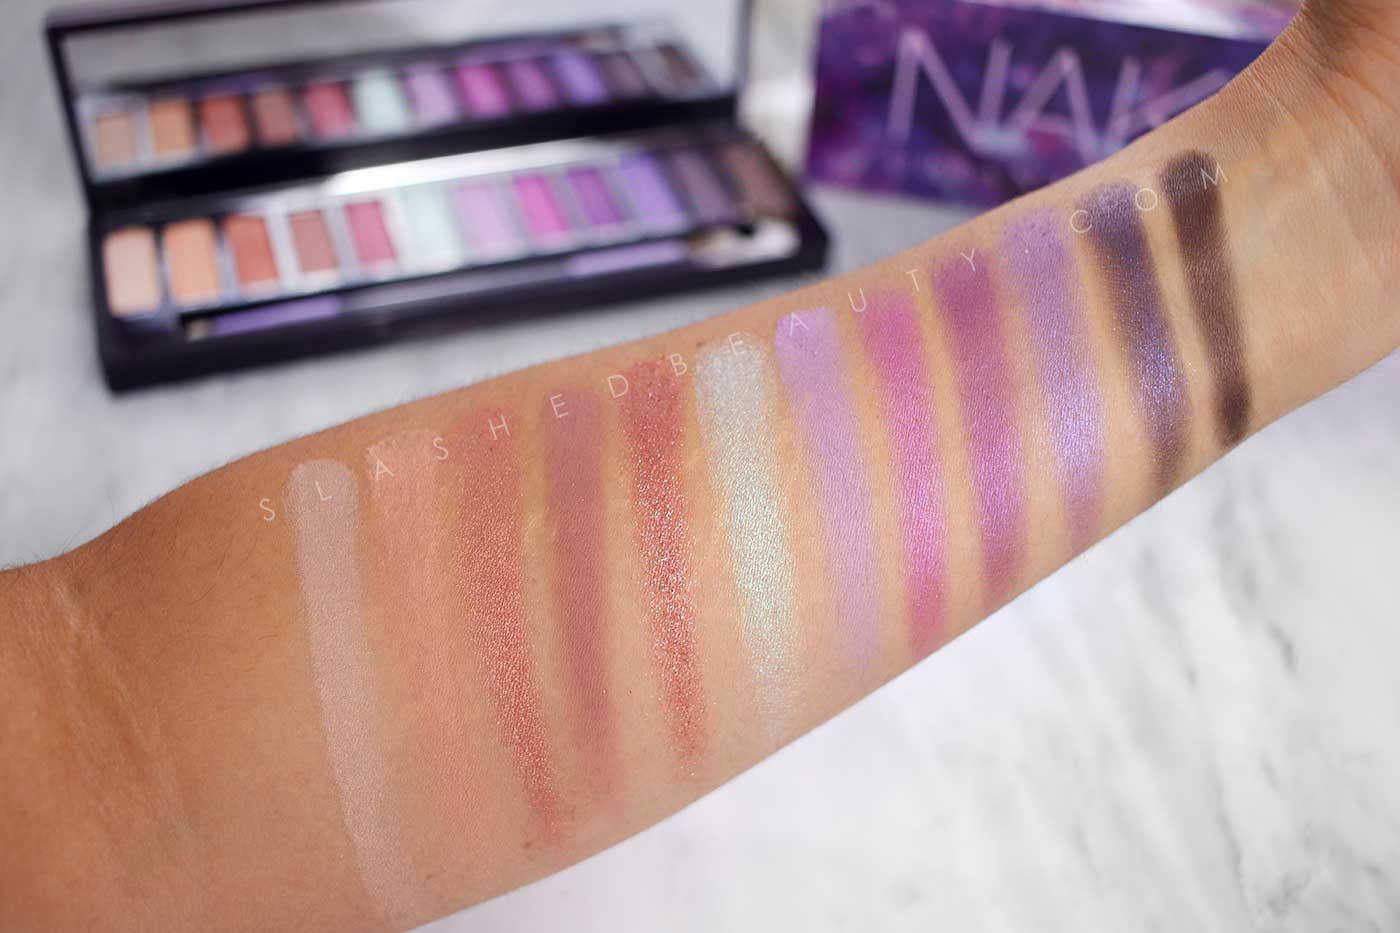 NEW Urban Decay Naked Ultraviolet Palette Review & Swatches | Slashed Beauty